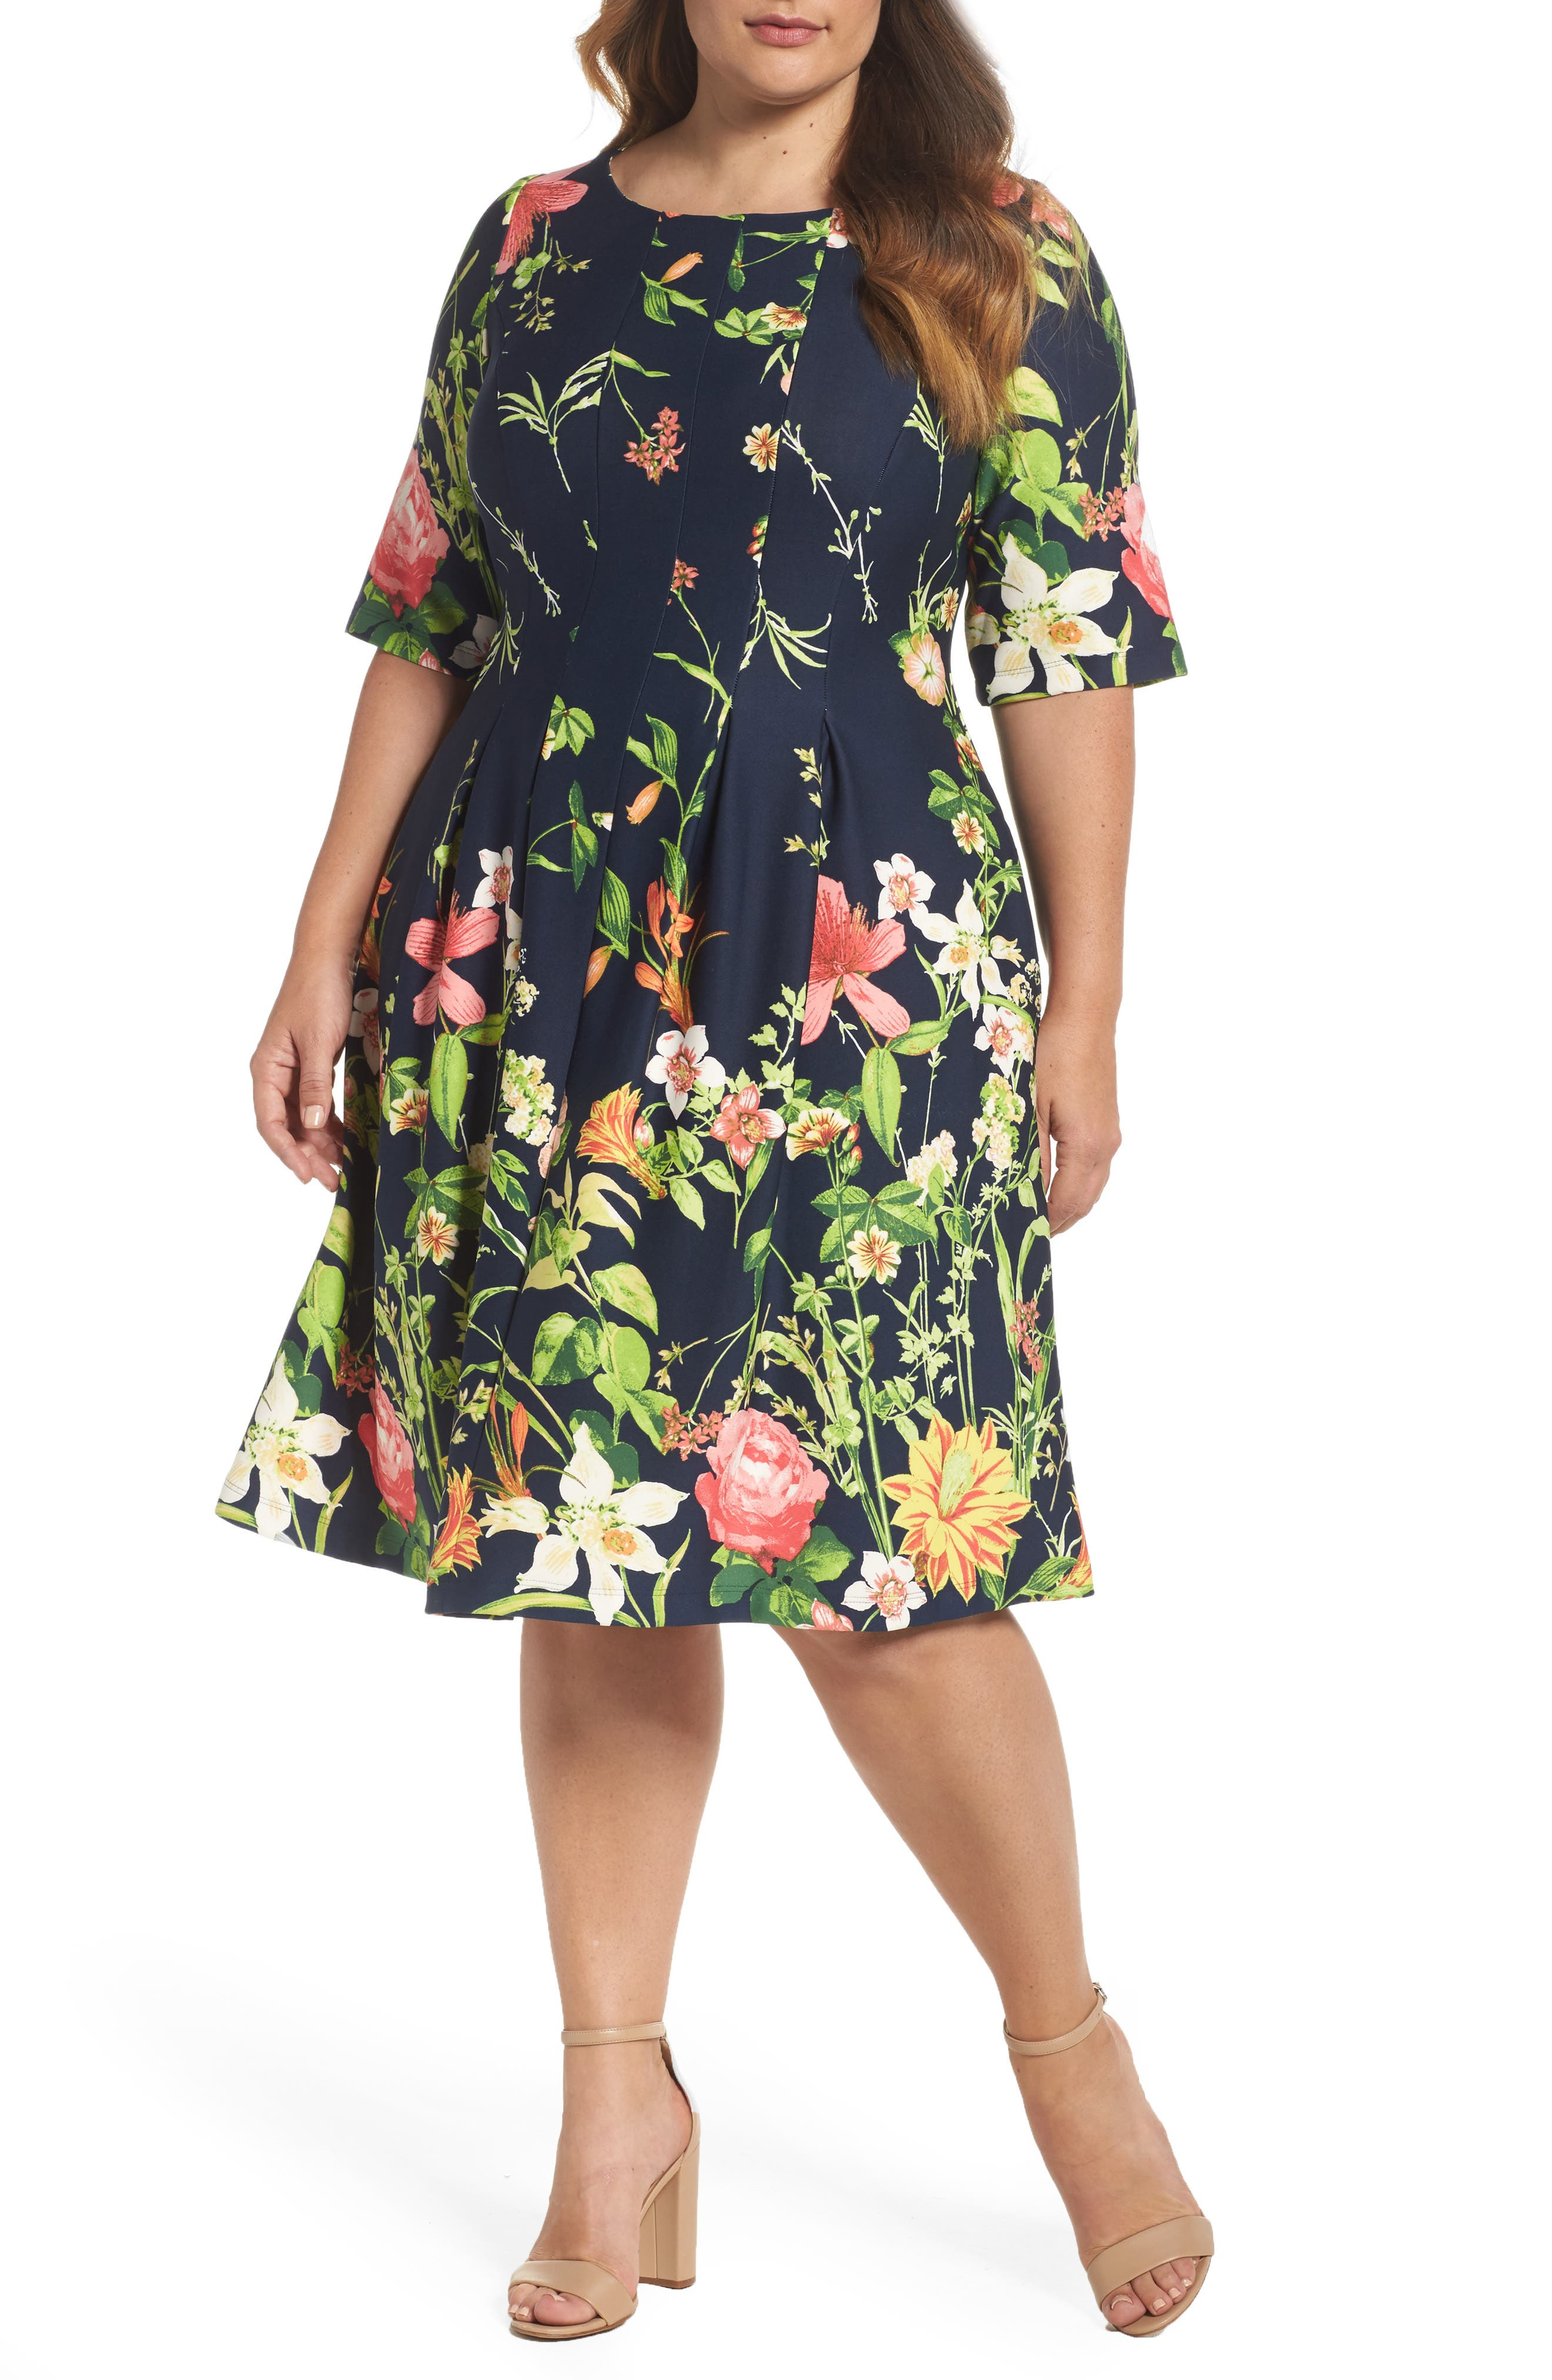 Gabby Skye Floral Scuba Fit & Flare Dress (Plus Size)